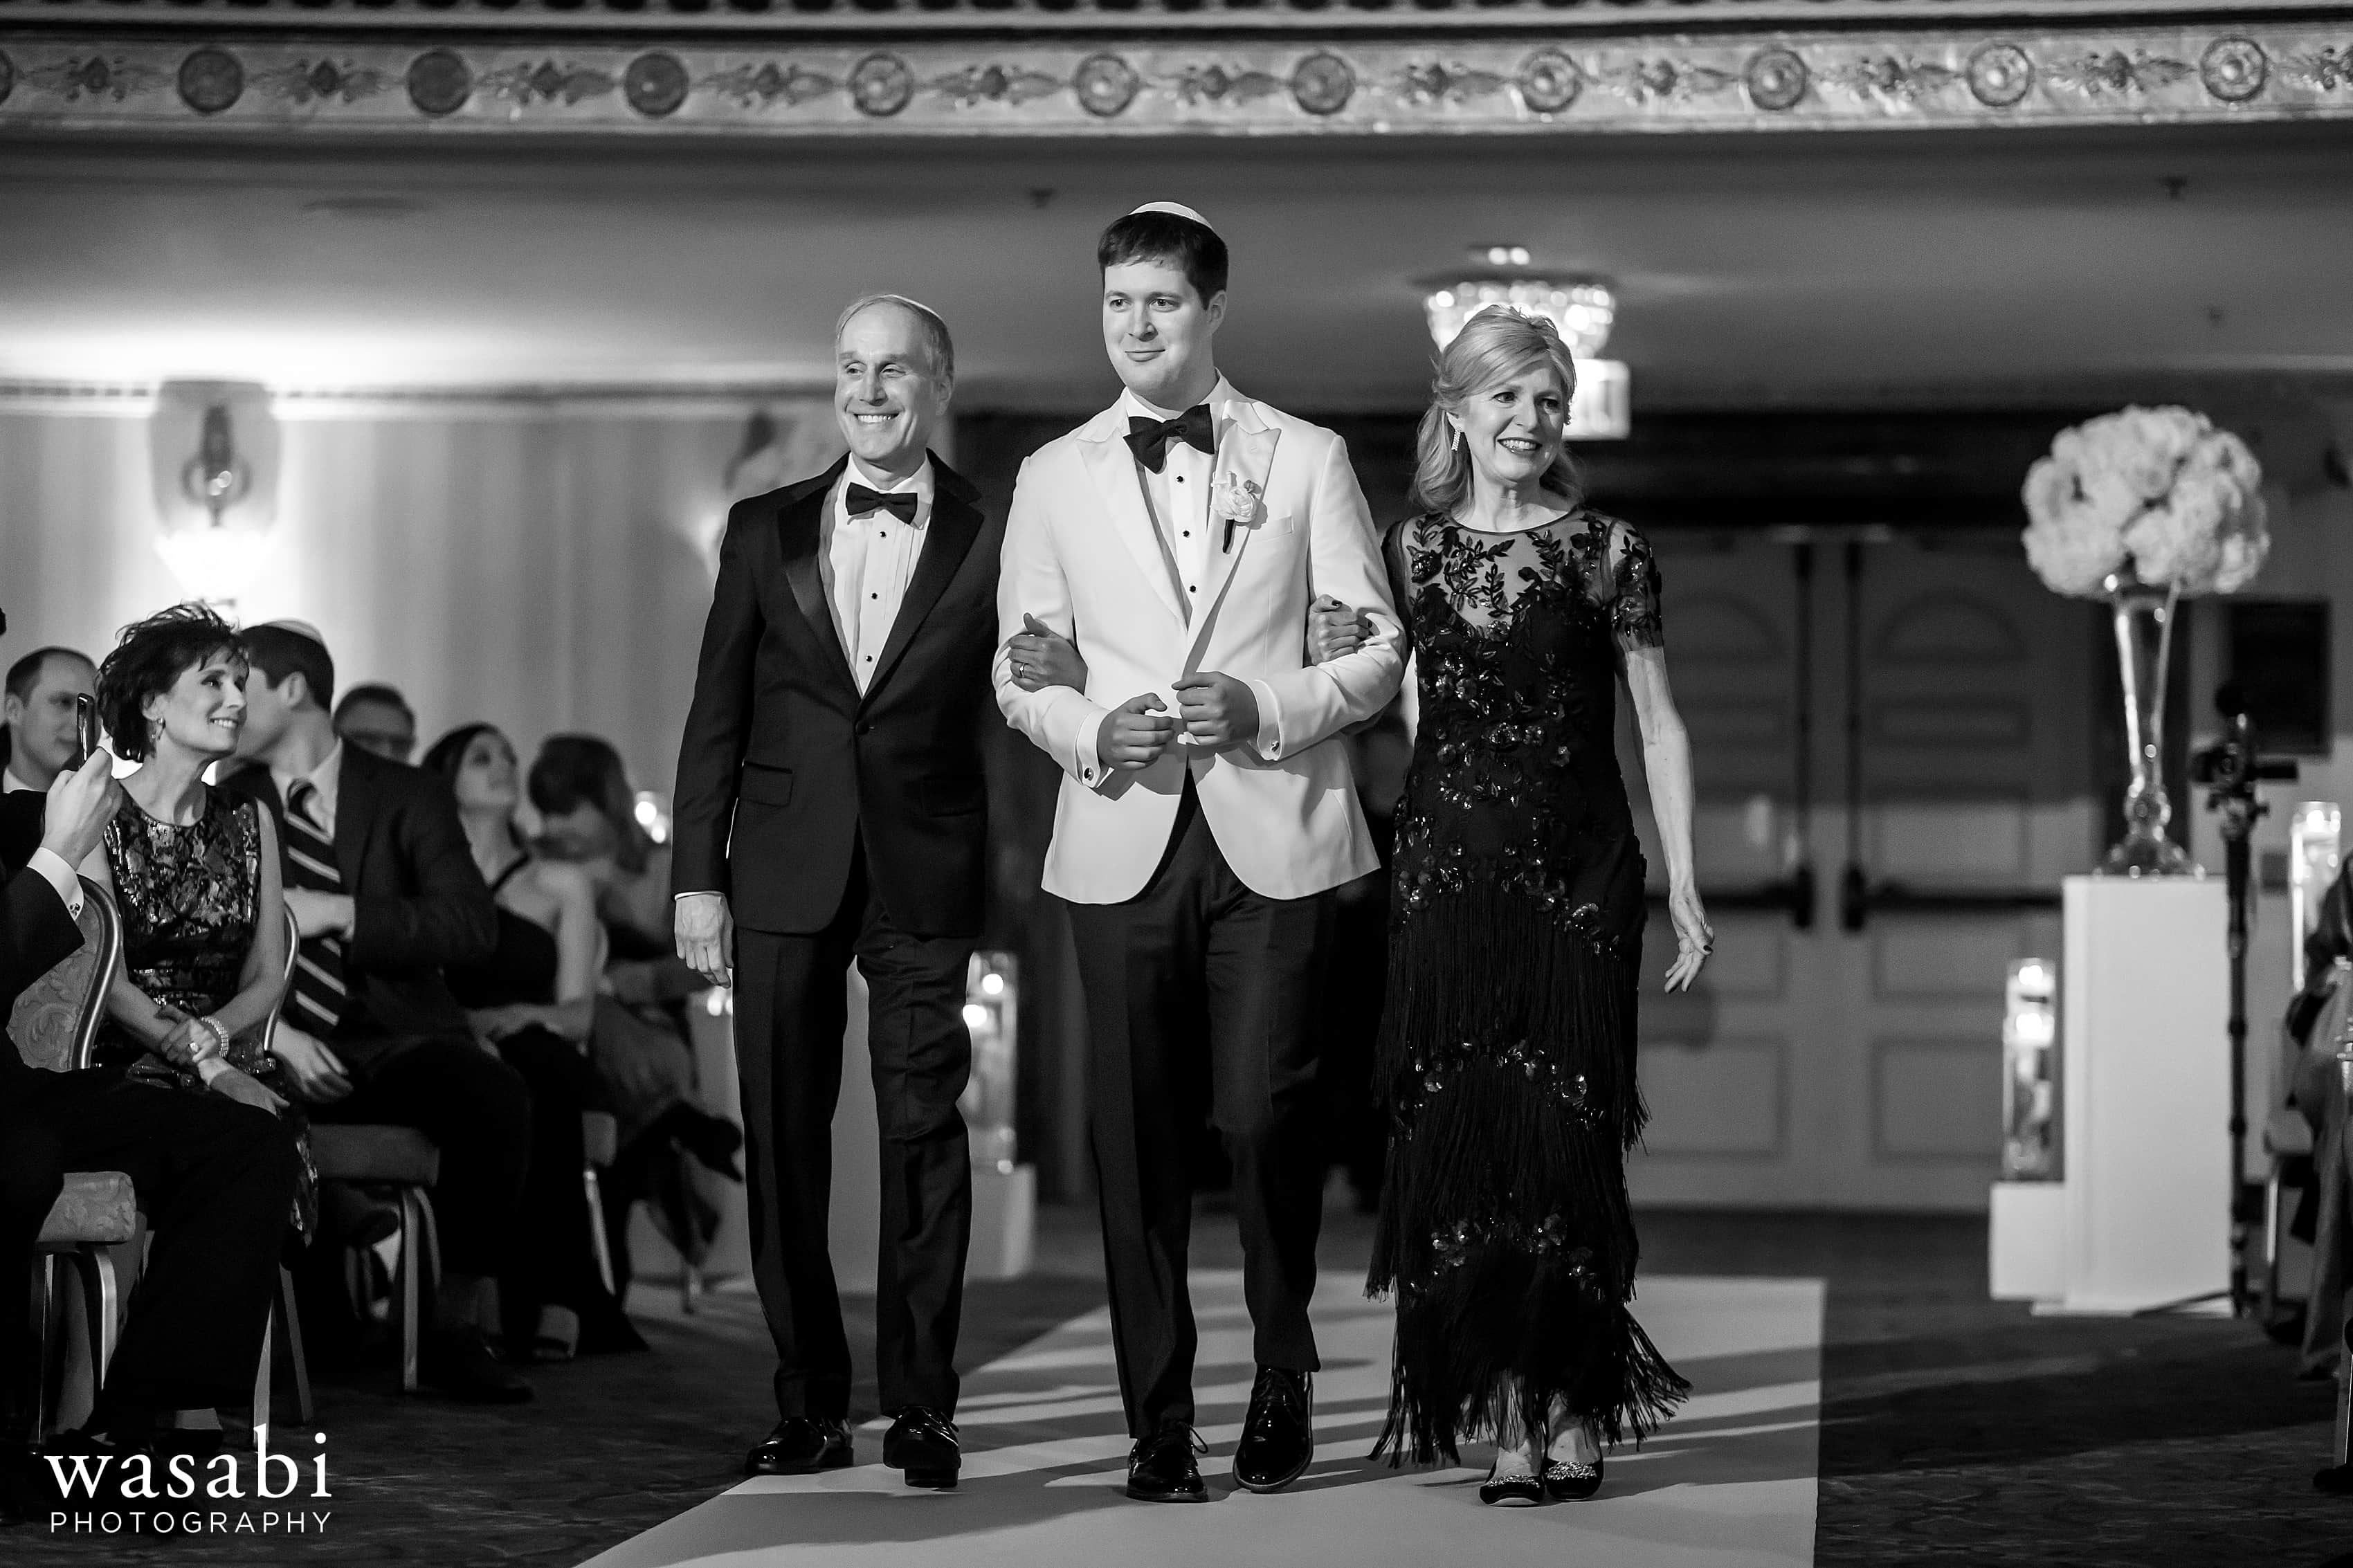 Groom walks down the aisle during Jewish wedding ceremony at InterContinental Chicago Magnificent Mile Hotel